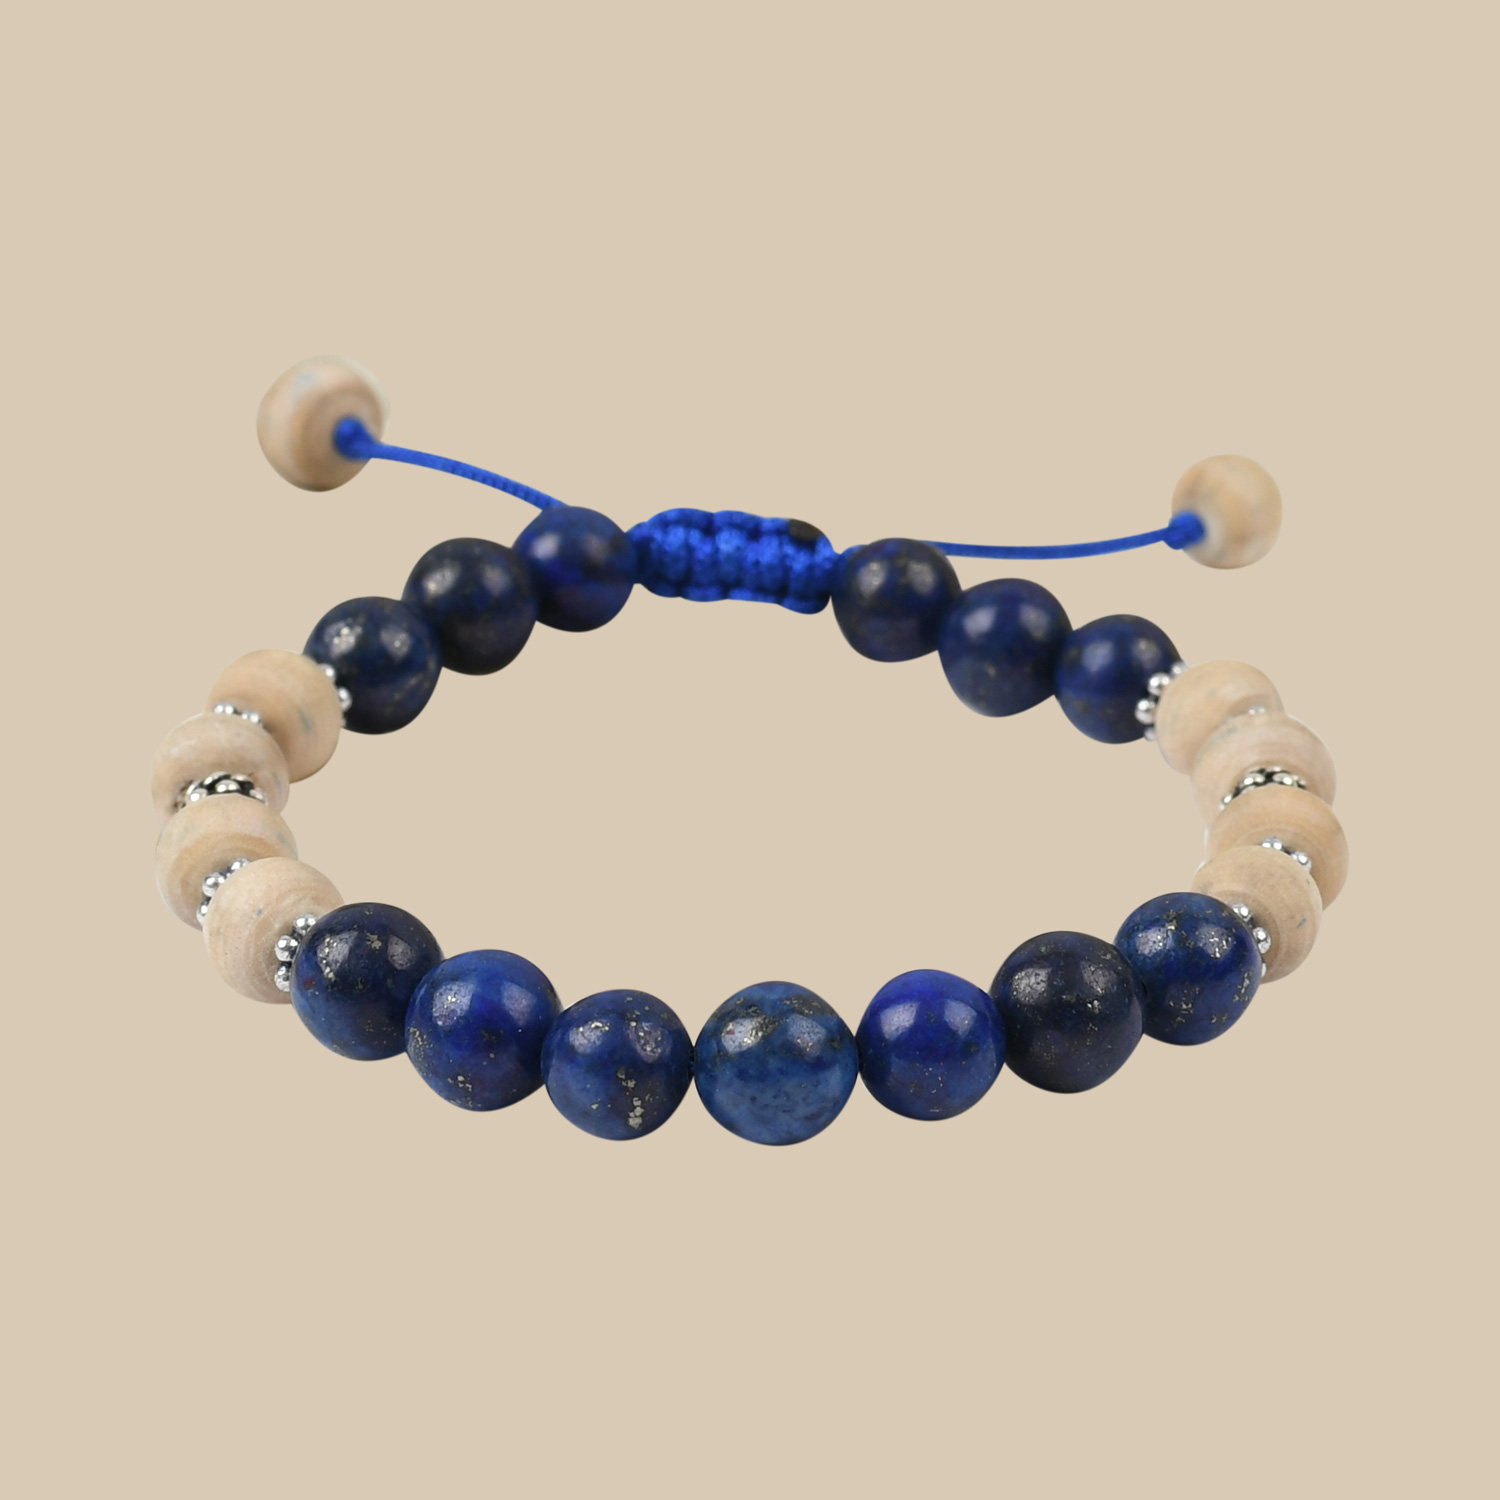 chakra luck il balance healing fullxfull men hematite good atlas elephant gemstone products bracelet